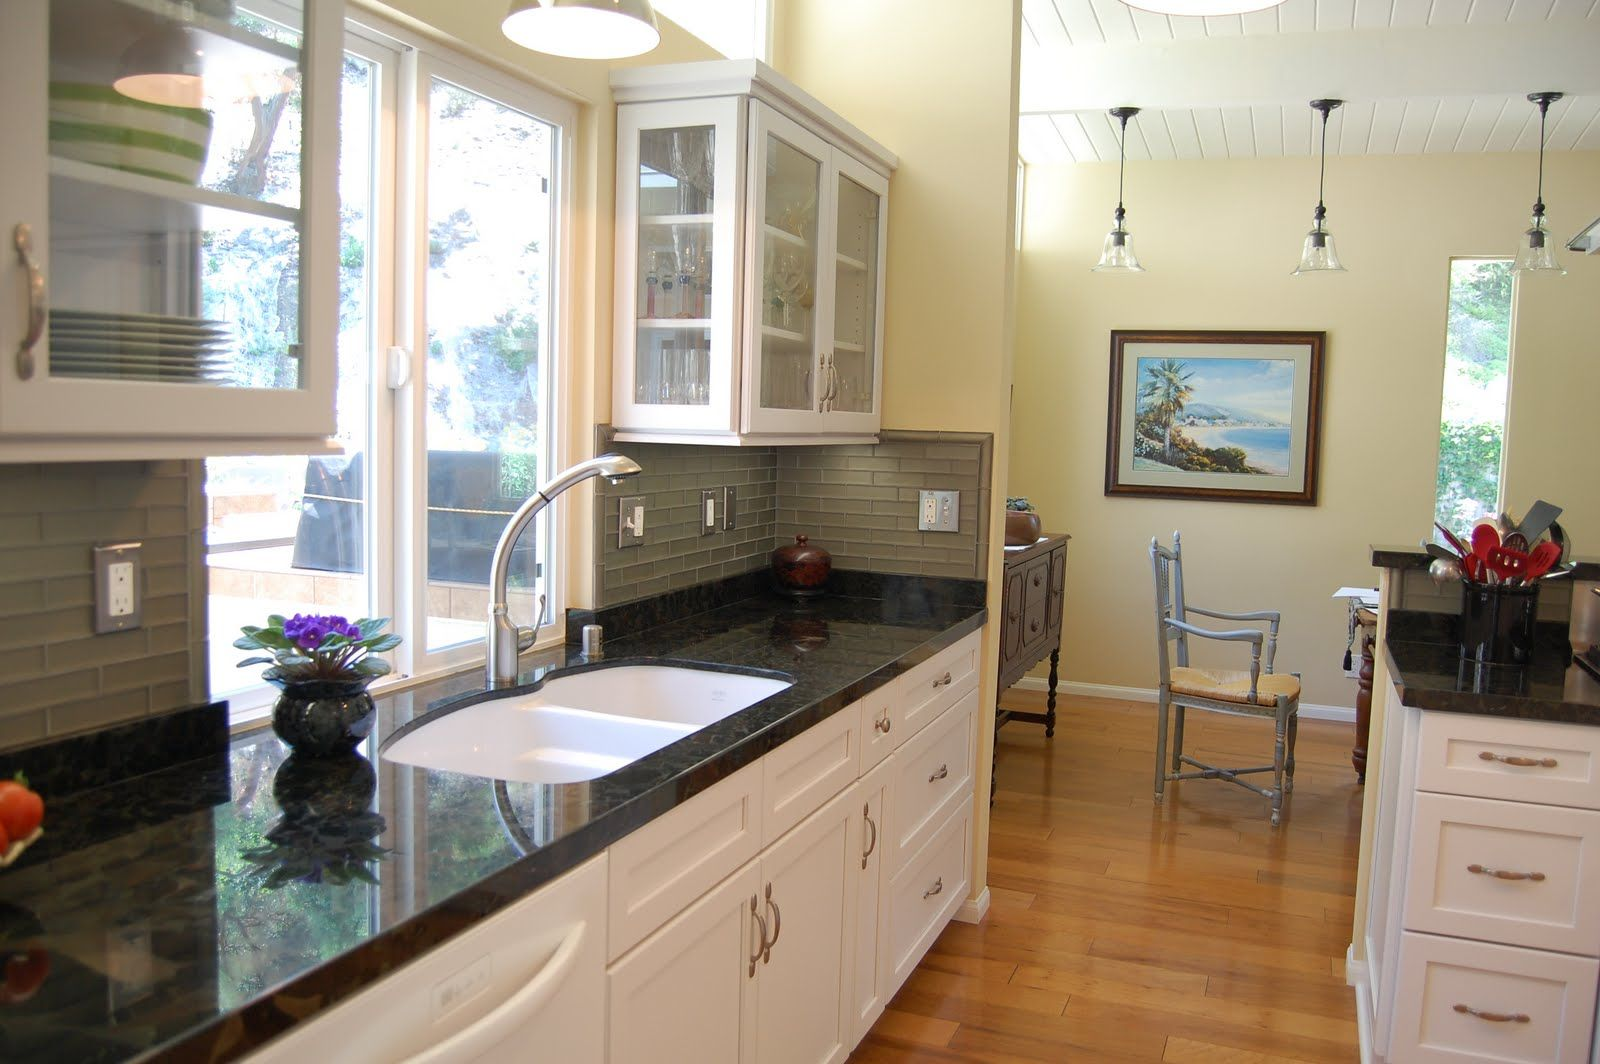 Remodeling The Ranch Style Home Ranch Kitchen Remodel Simple Kitchen Remodel Kitchen Remodel Layout